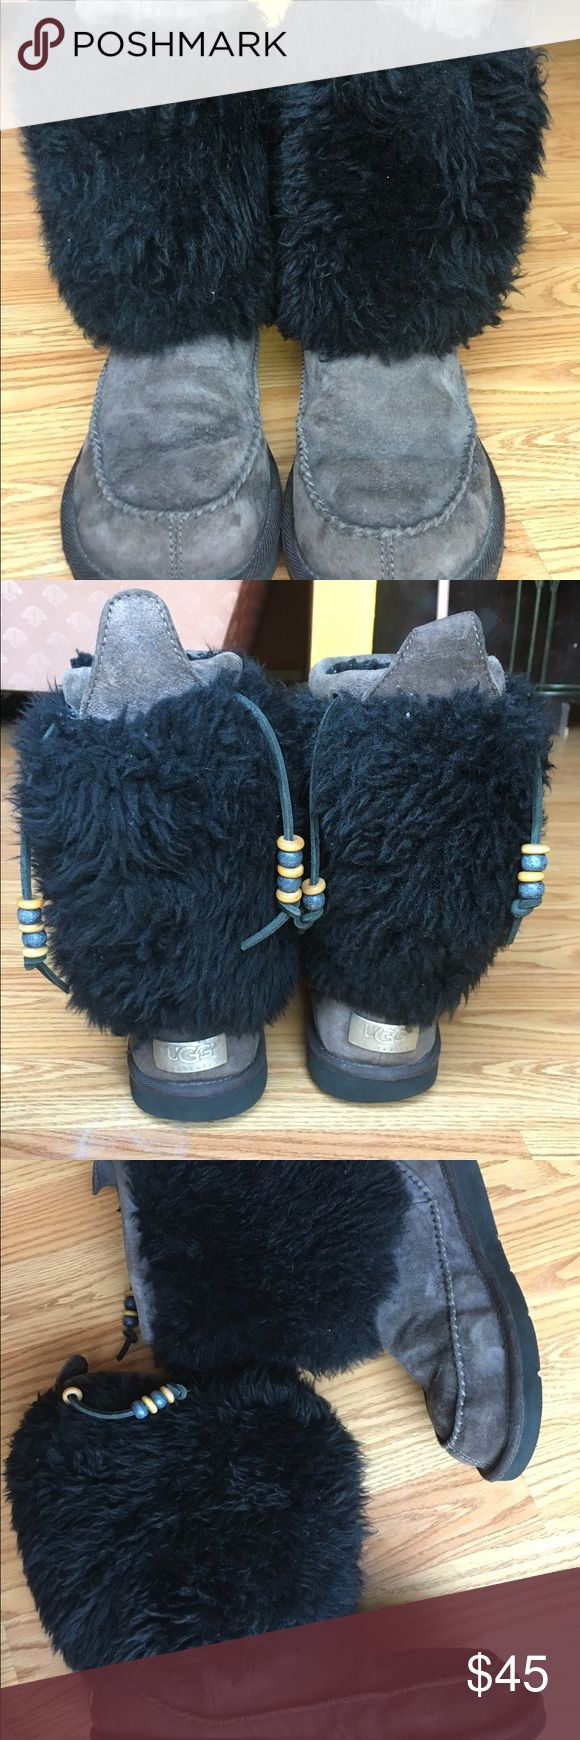 Ugg Indian boots. Ugg Indian boots. Color is gray with black. Good condition. Additional listing with more pictures. Price is firm. UGG Shoes Winter & Rain Boots